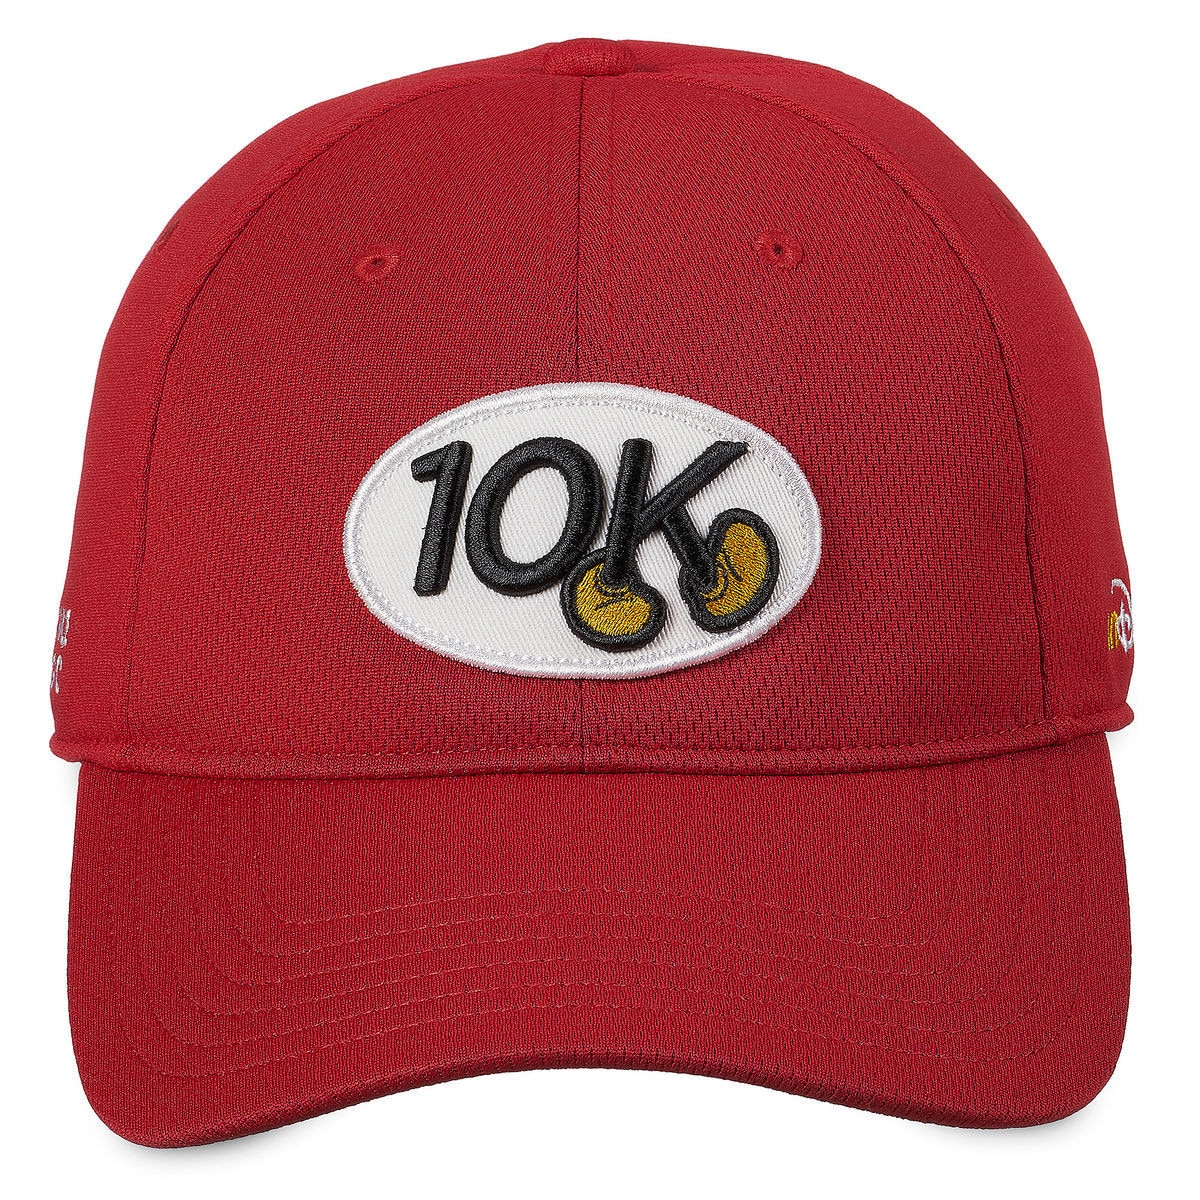 Product Image of Mickey Mouse runDisney Baseball Cap for Adults - 10K - Red    1 a67a635151e